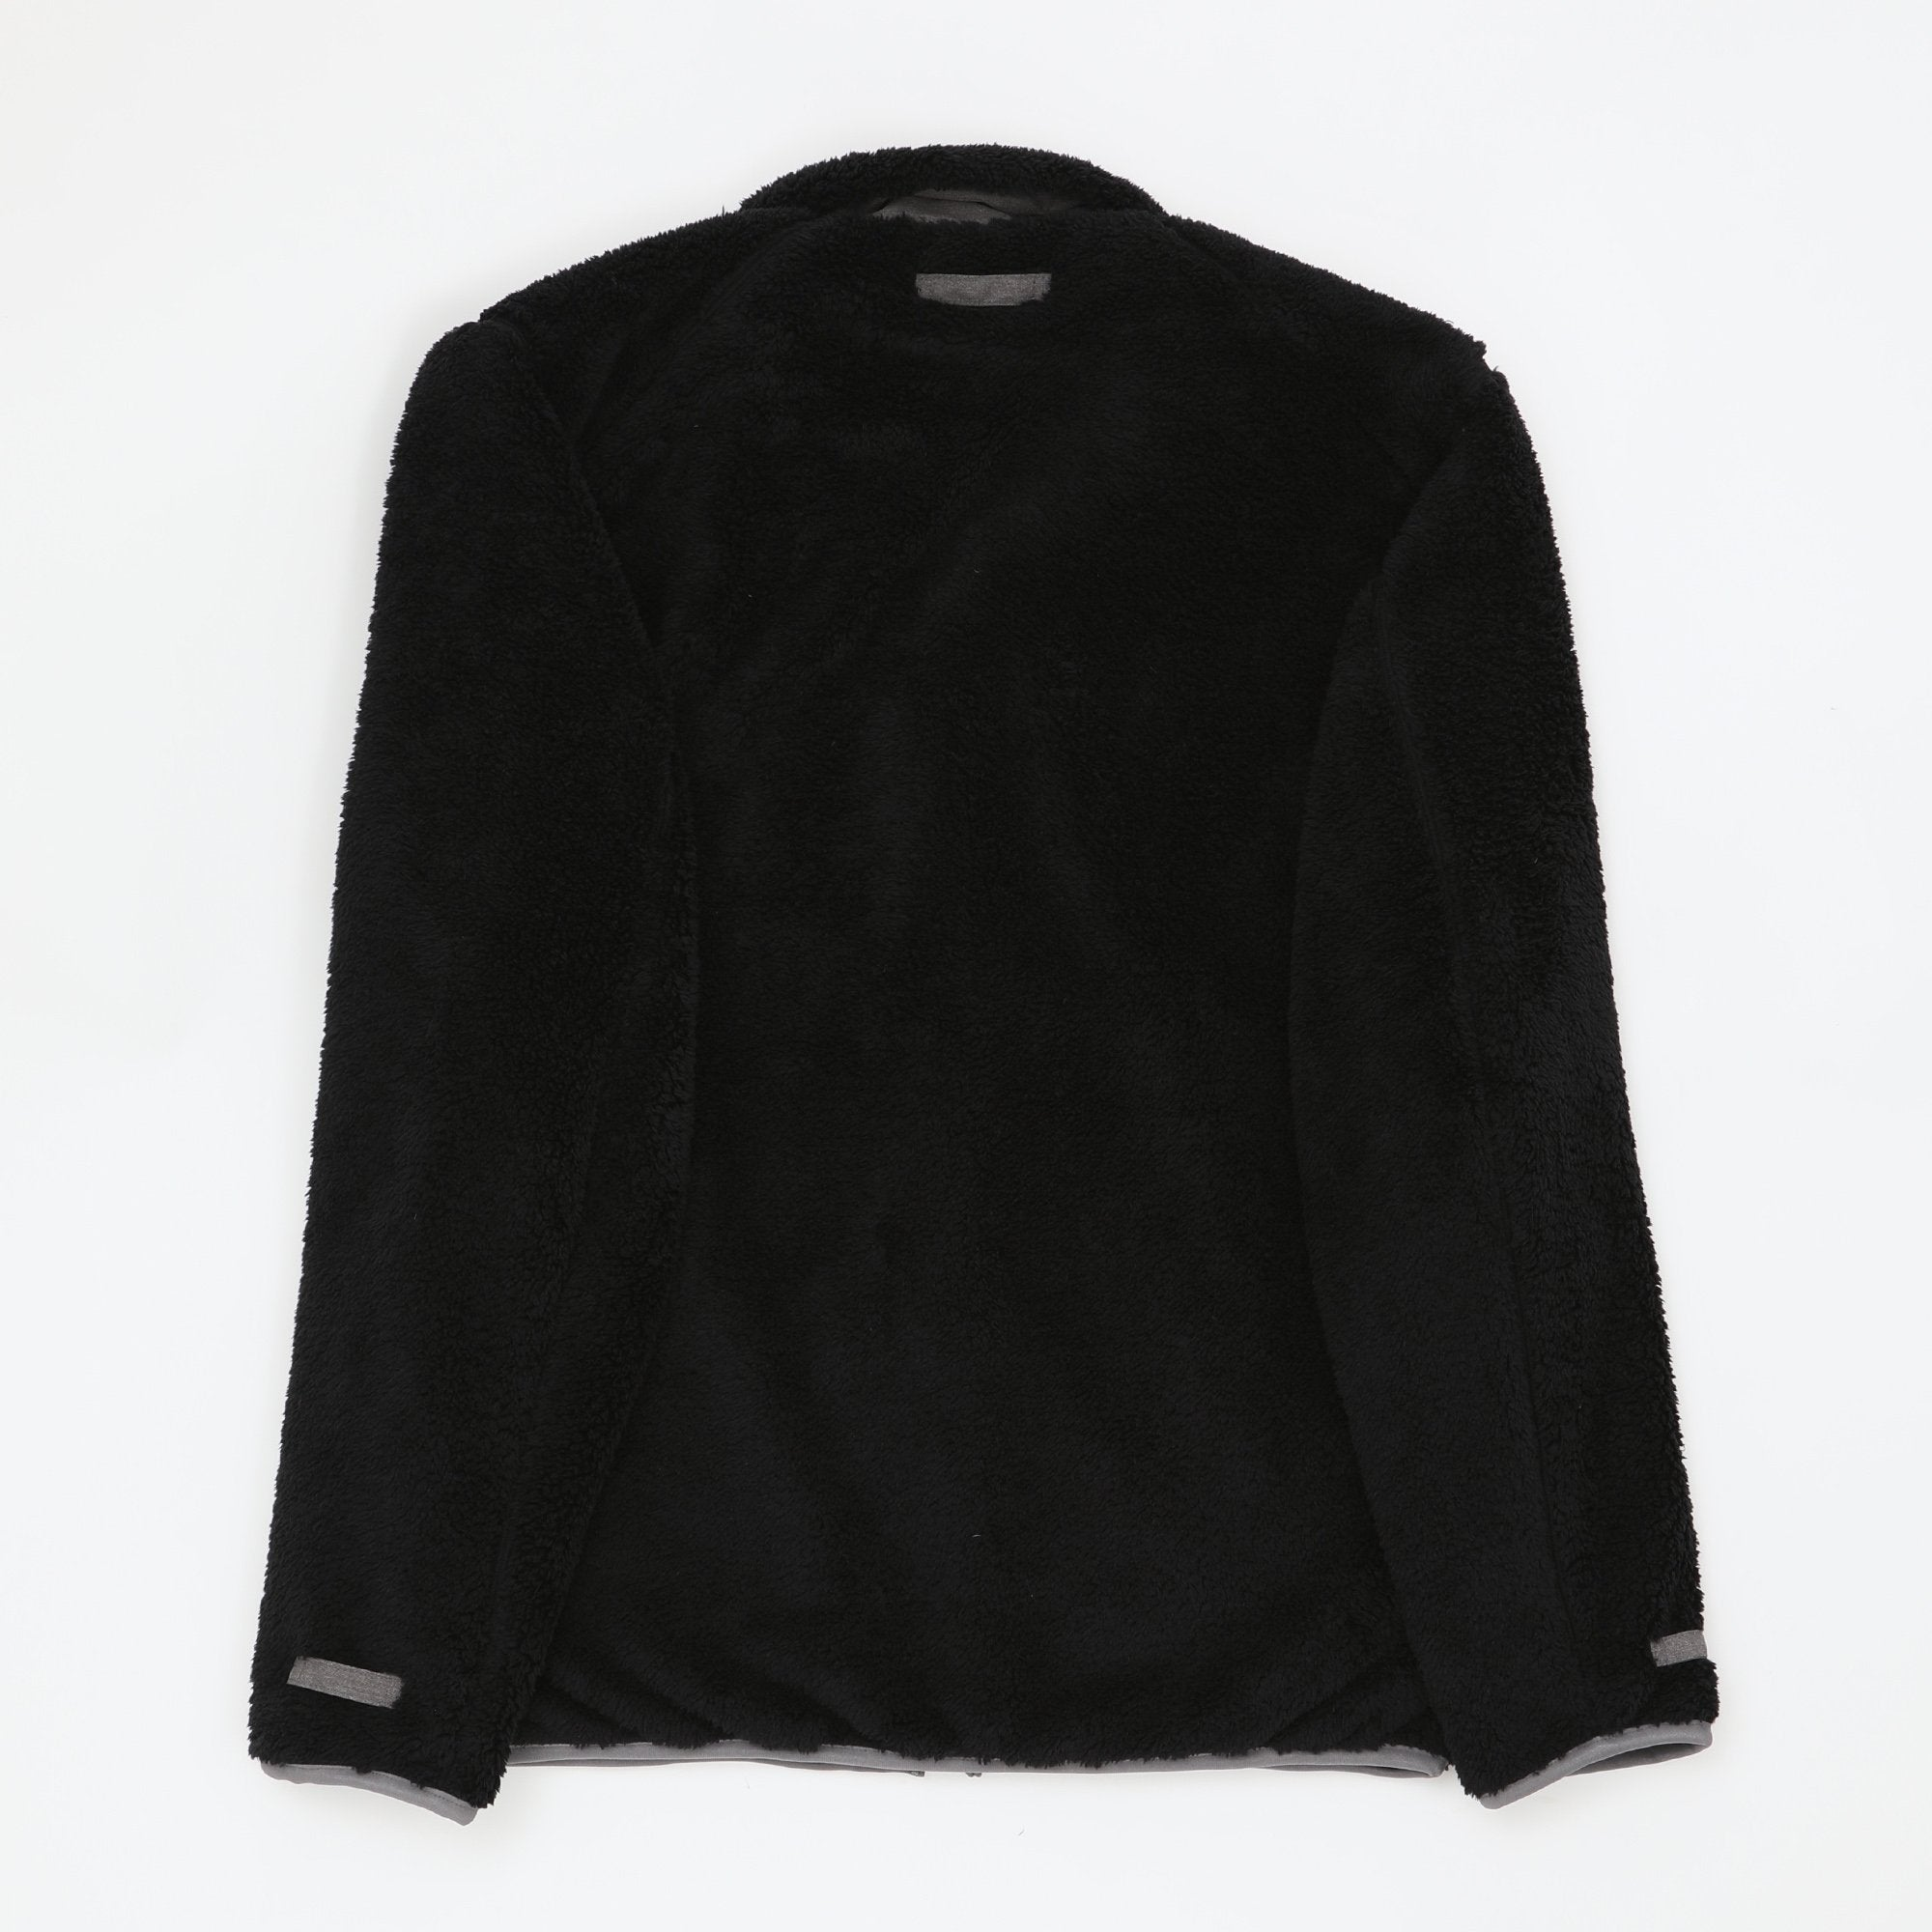 fujito-fleece-blouson-black-202-sunnysiders-1.jpg